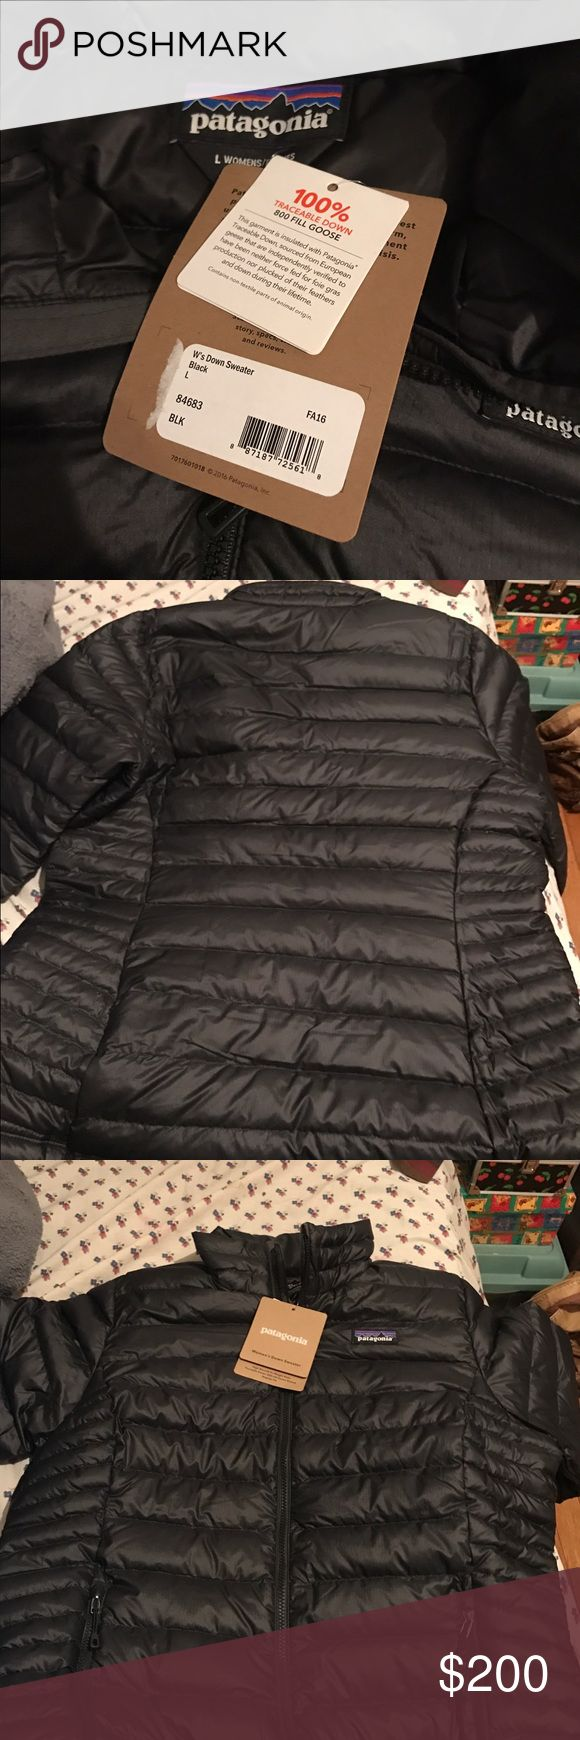 BRAND NEW  Patagonia Women's Down Sweater Jacke I ordered two on accident :) I love this jacket so much it's very warm and light. Open to other prices ! Patagonia Jackets & Coats Puffers